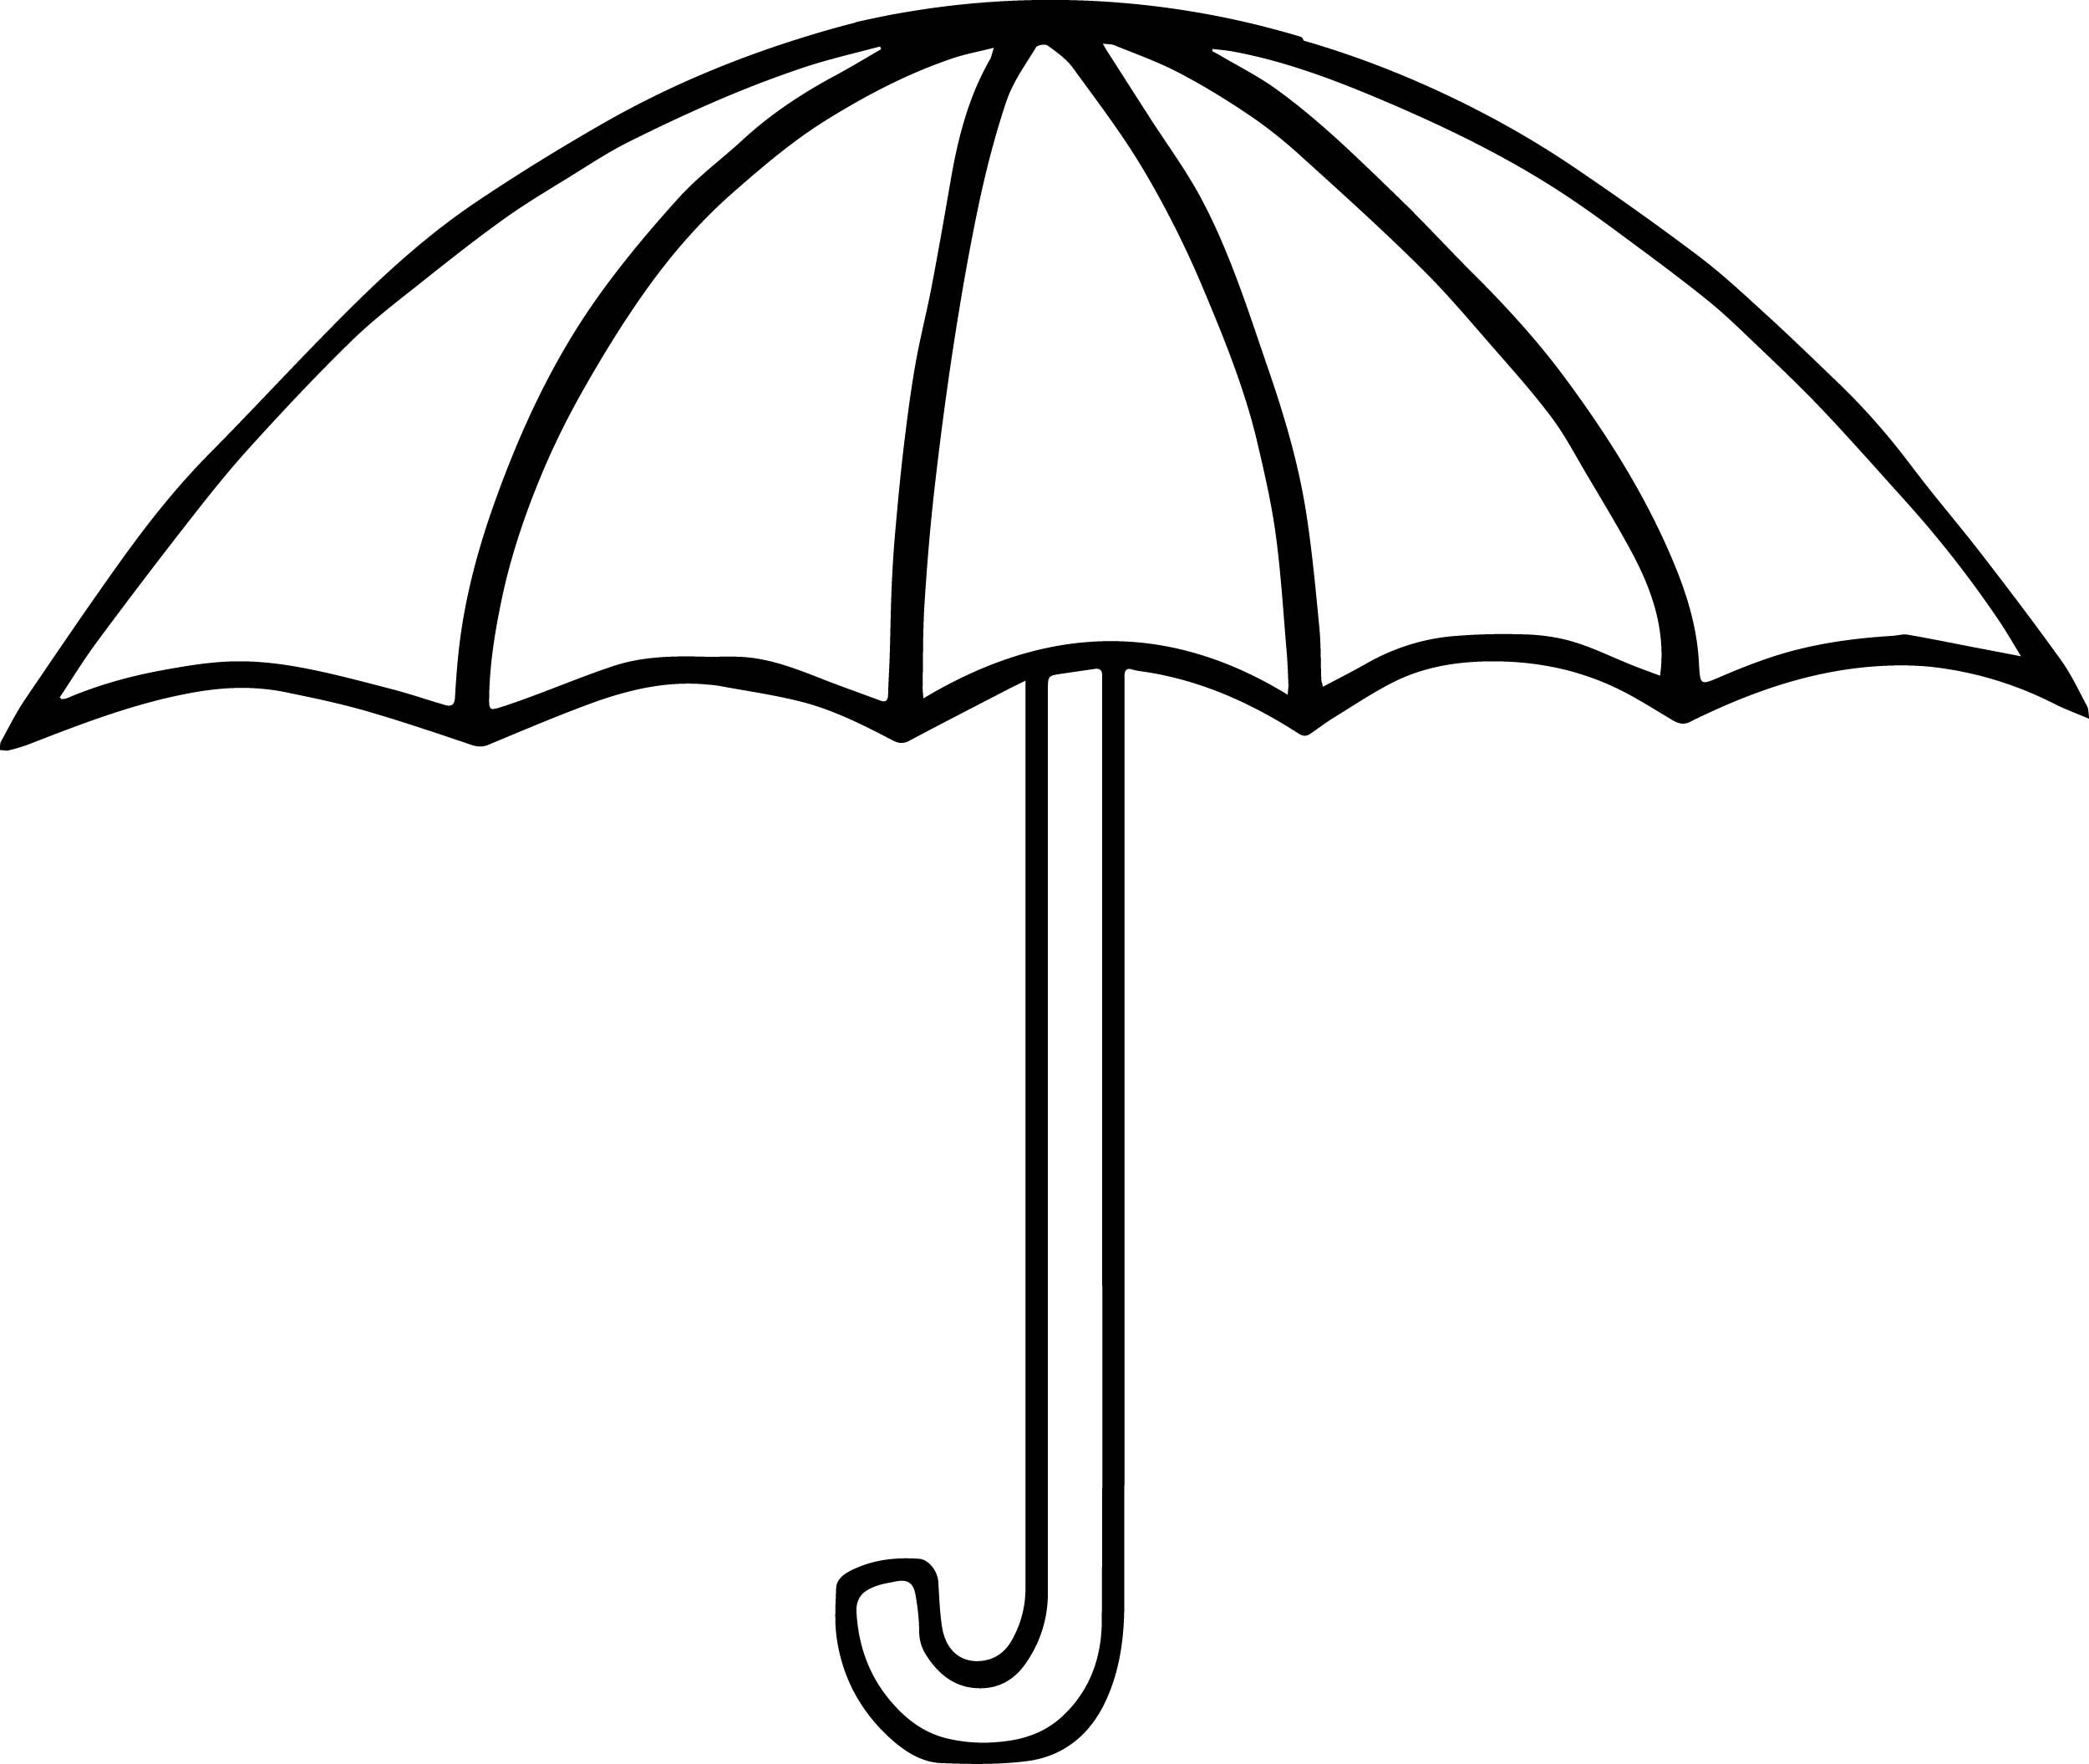 Summer Umbrella Coloring Page Wecoloringpage And Umbrella